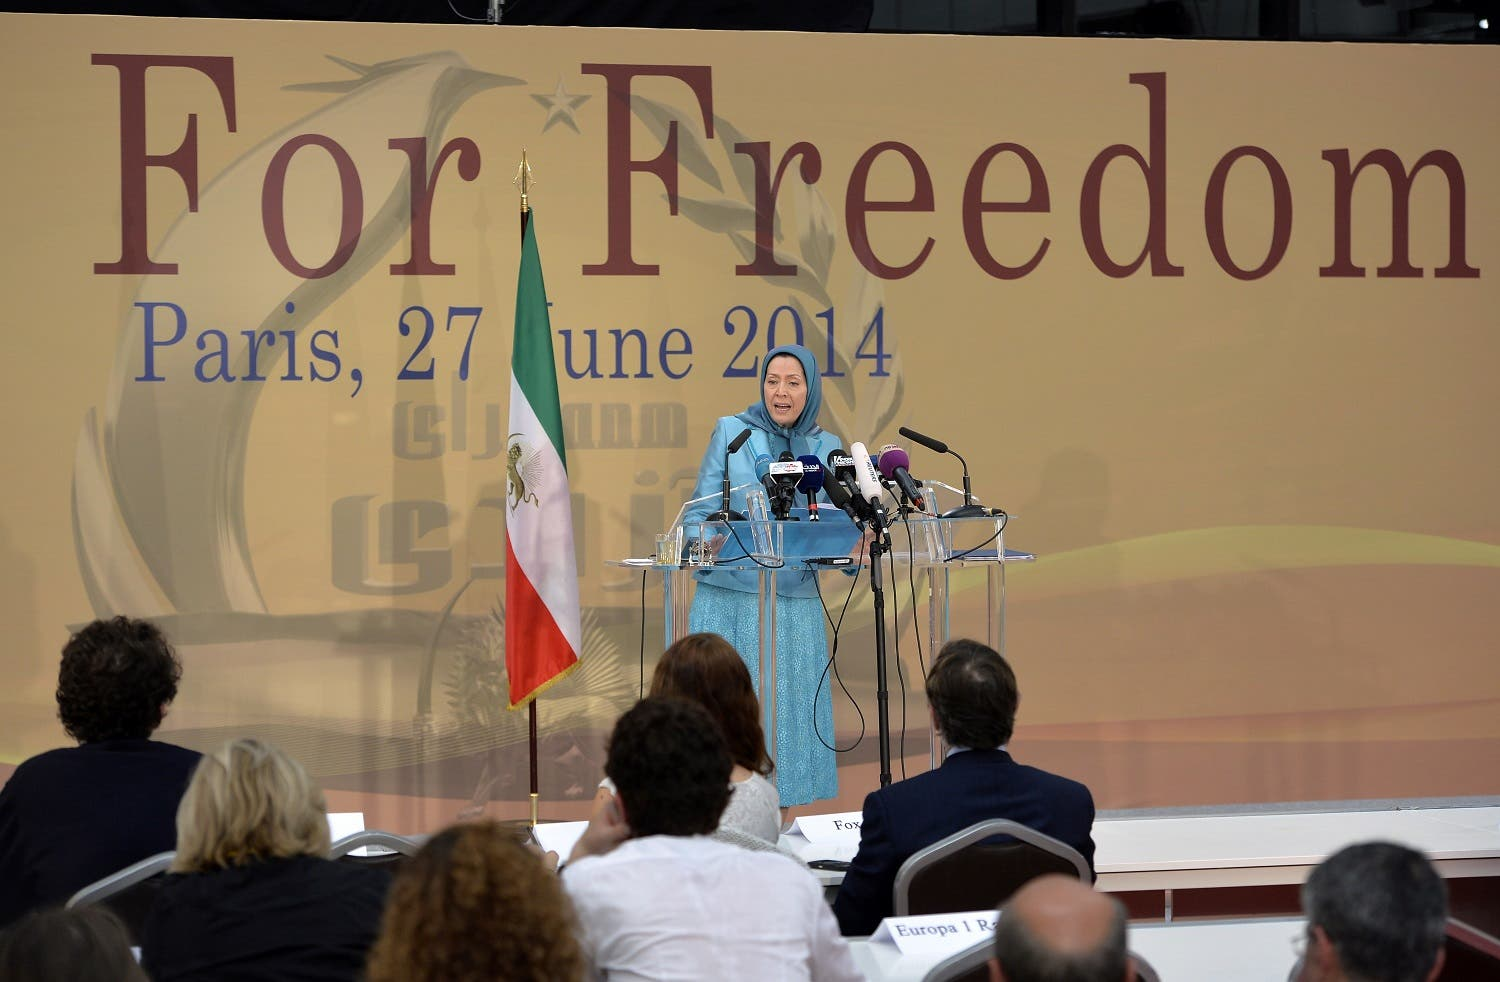 Maryam Rajavi, (C) founder of the People's Mojahedin Organization of Iran (PMOI) and president of the National Council of Resistance of Iran (NCRI) speaks on June 27, 2014 in Villepinte. (AFP)